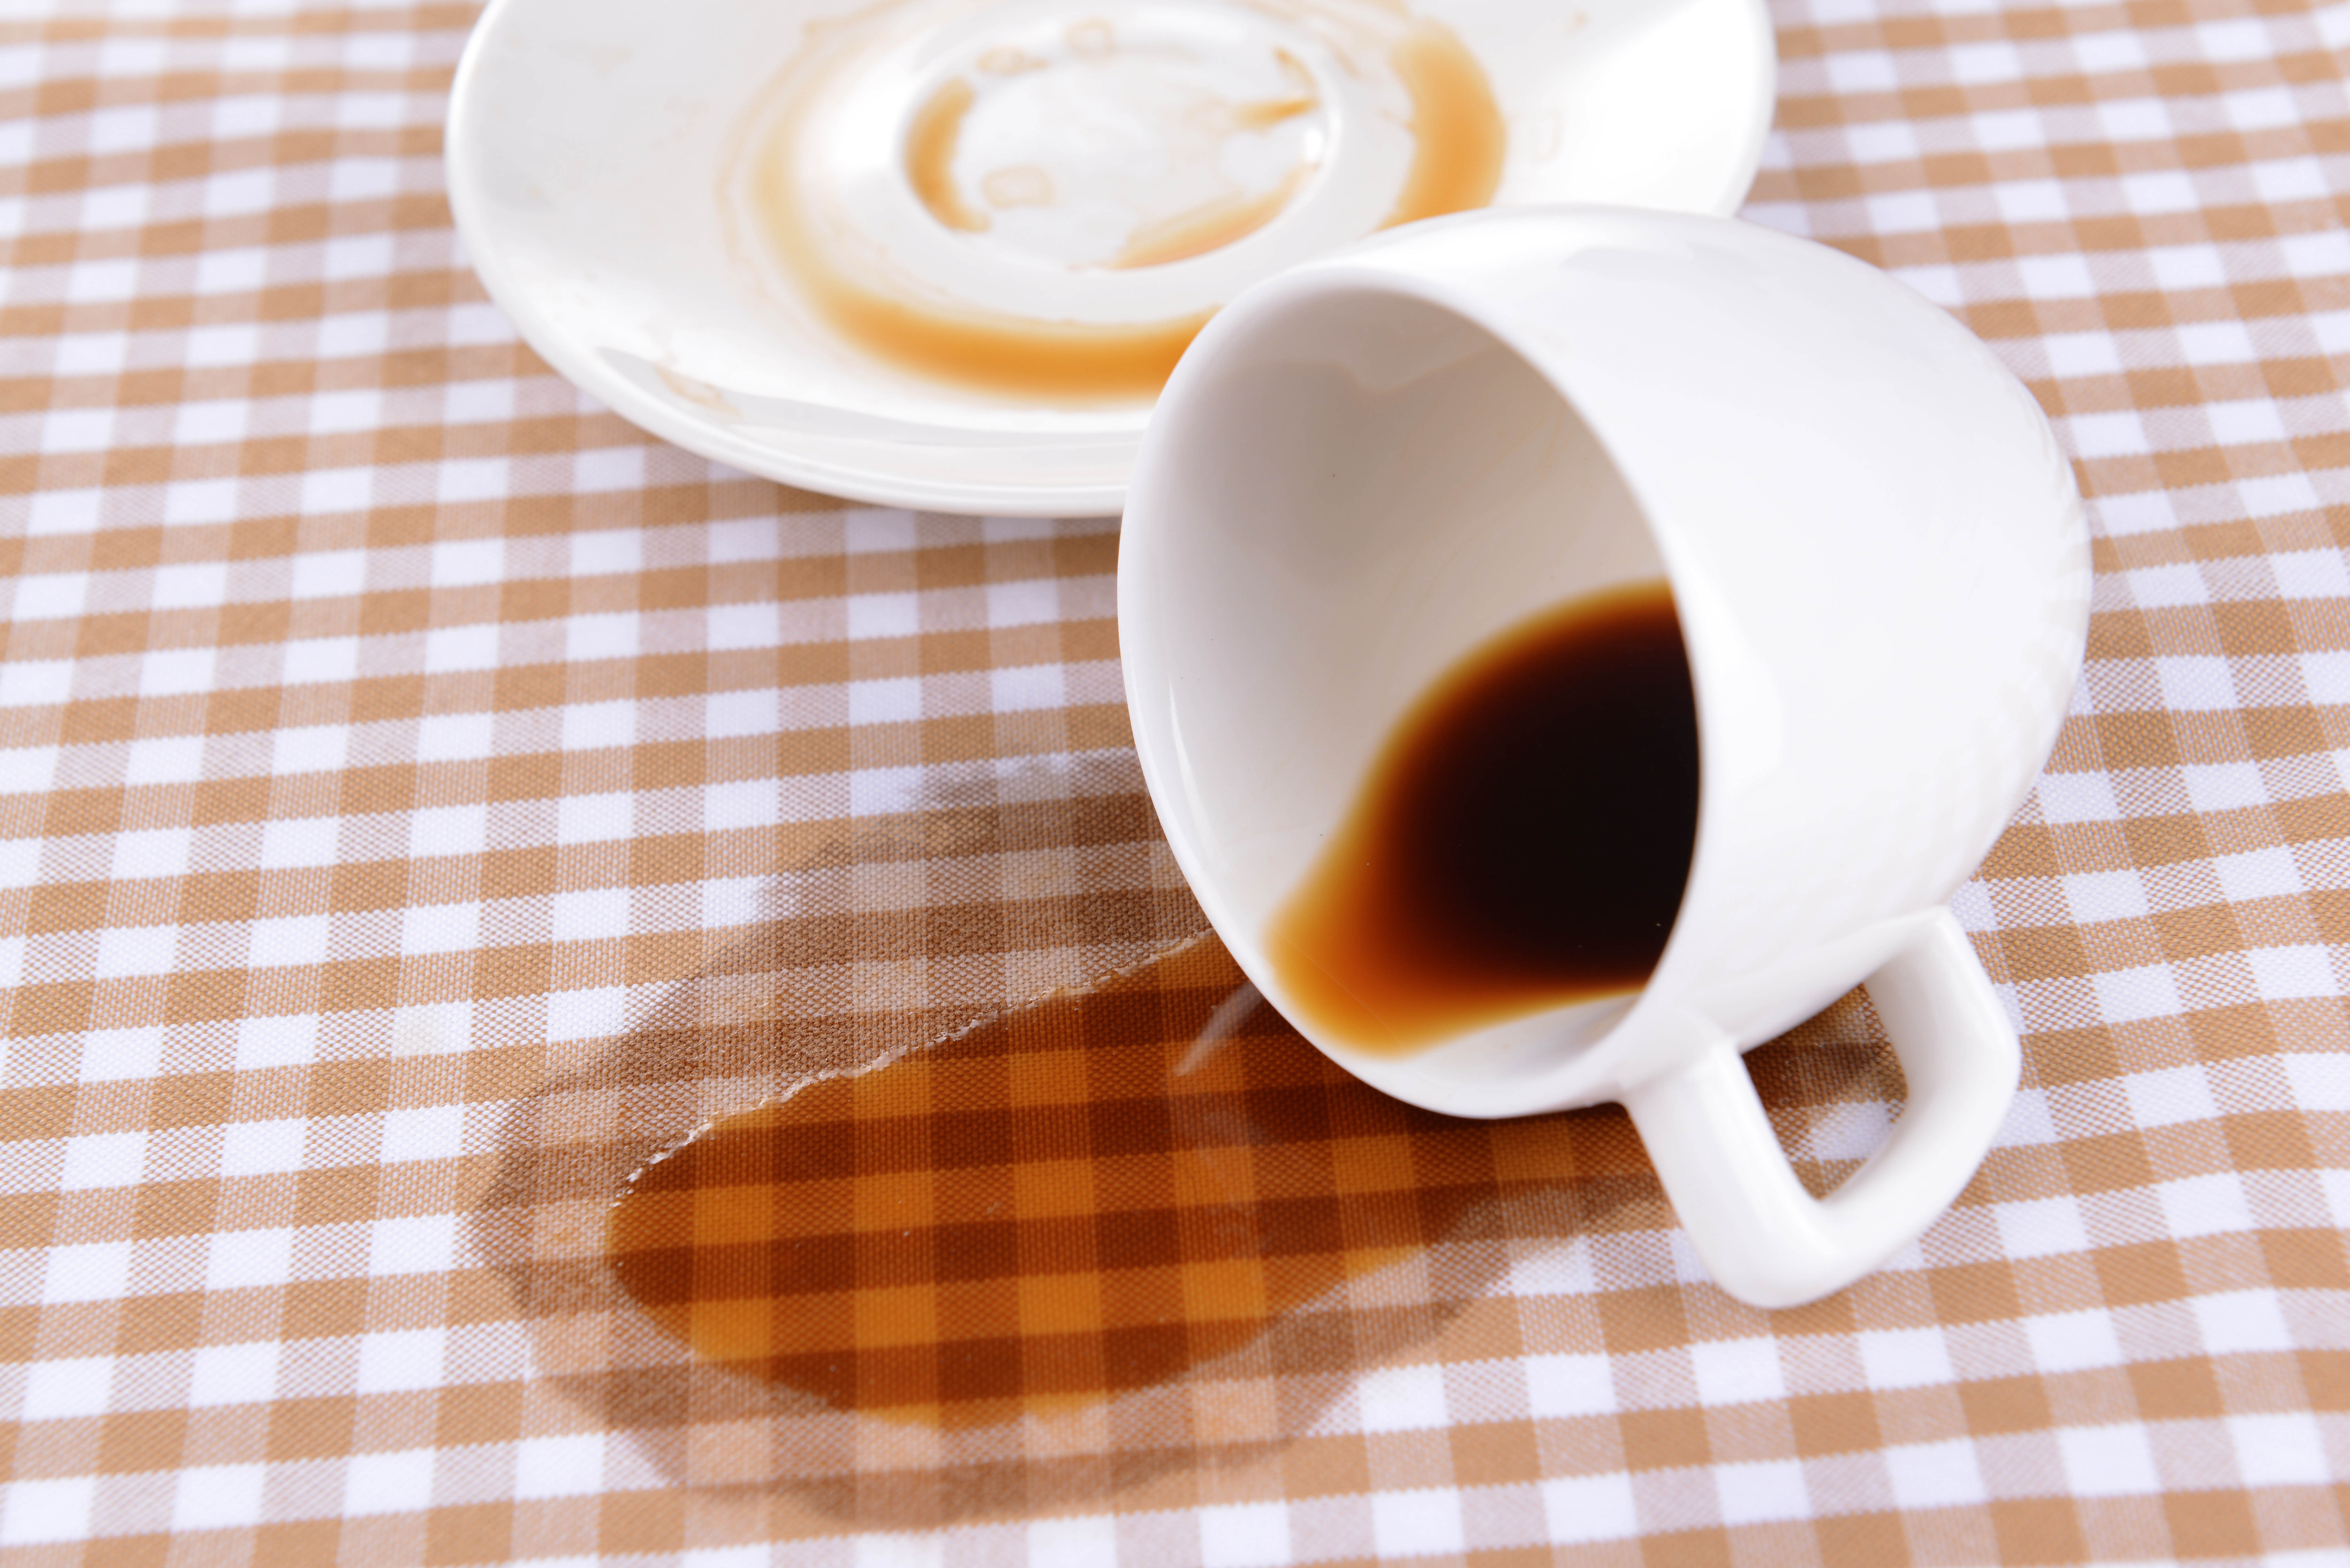 coffee spilled on tablecloth